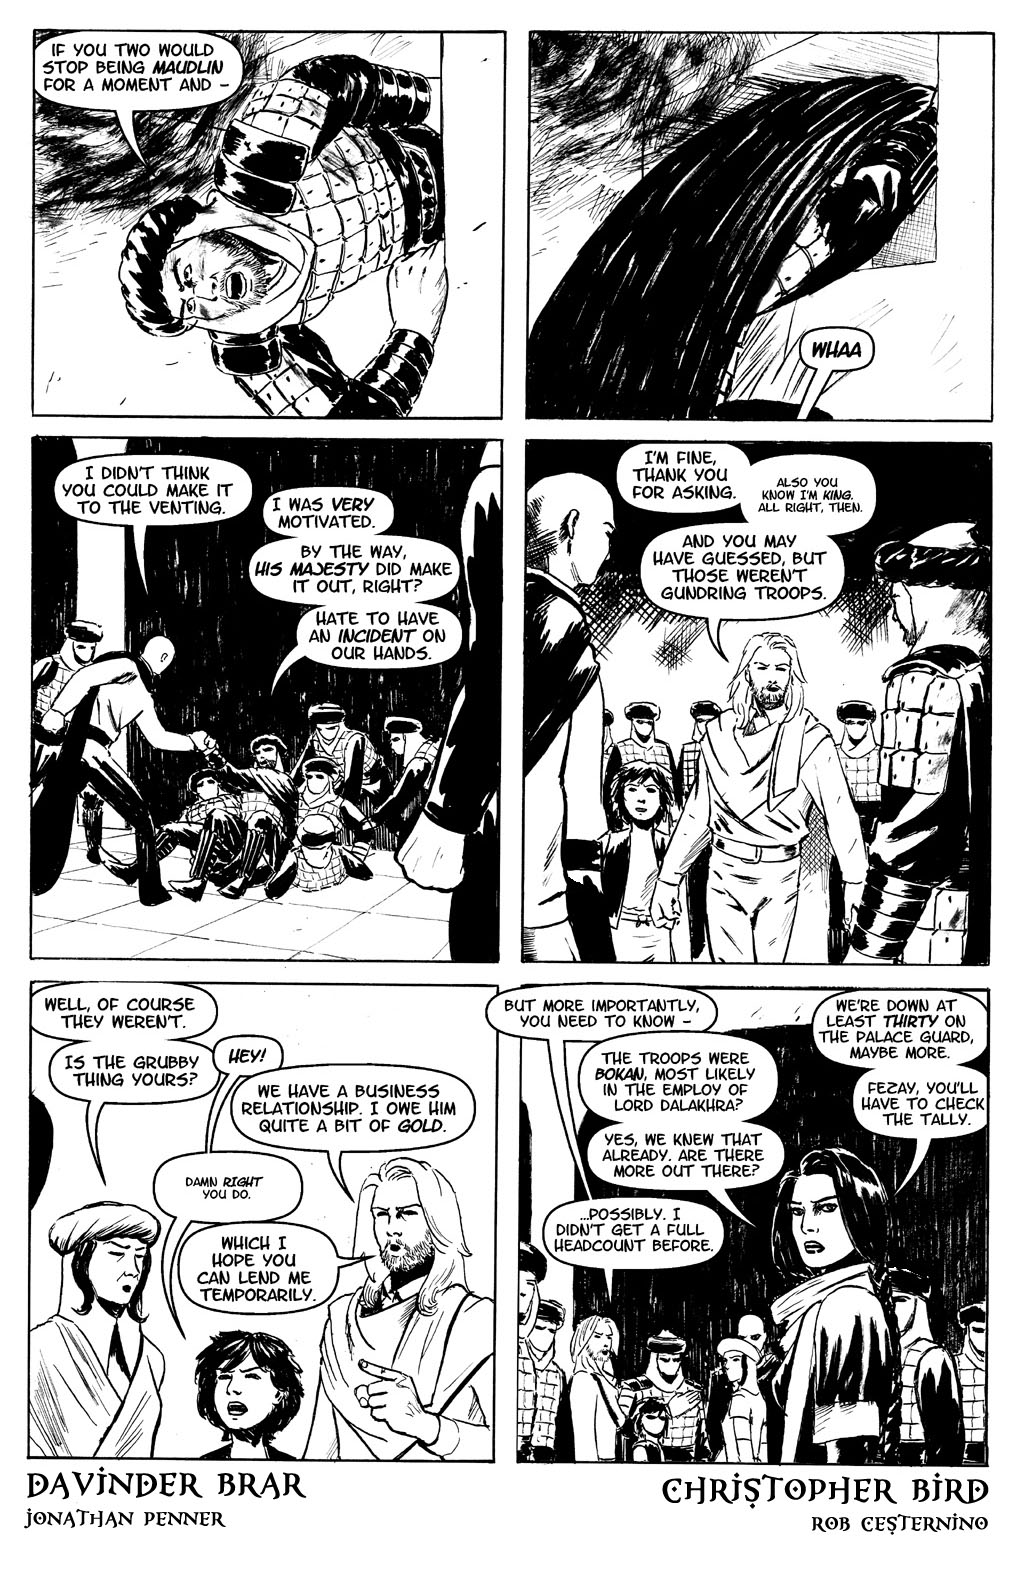 Book 5, page 25